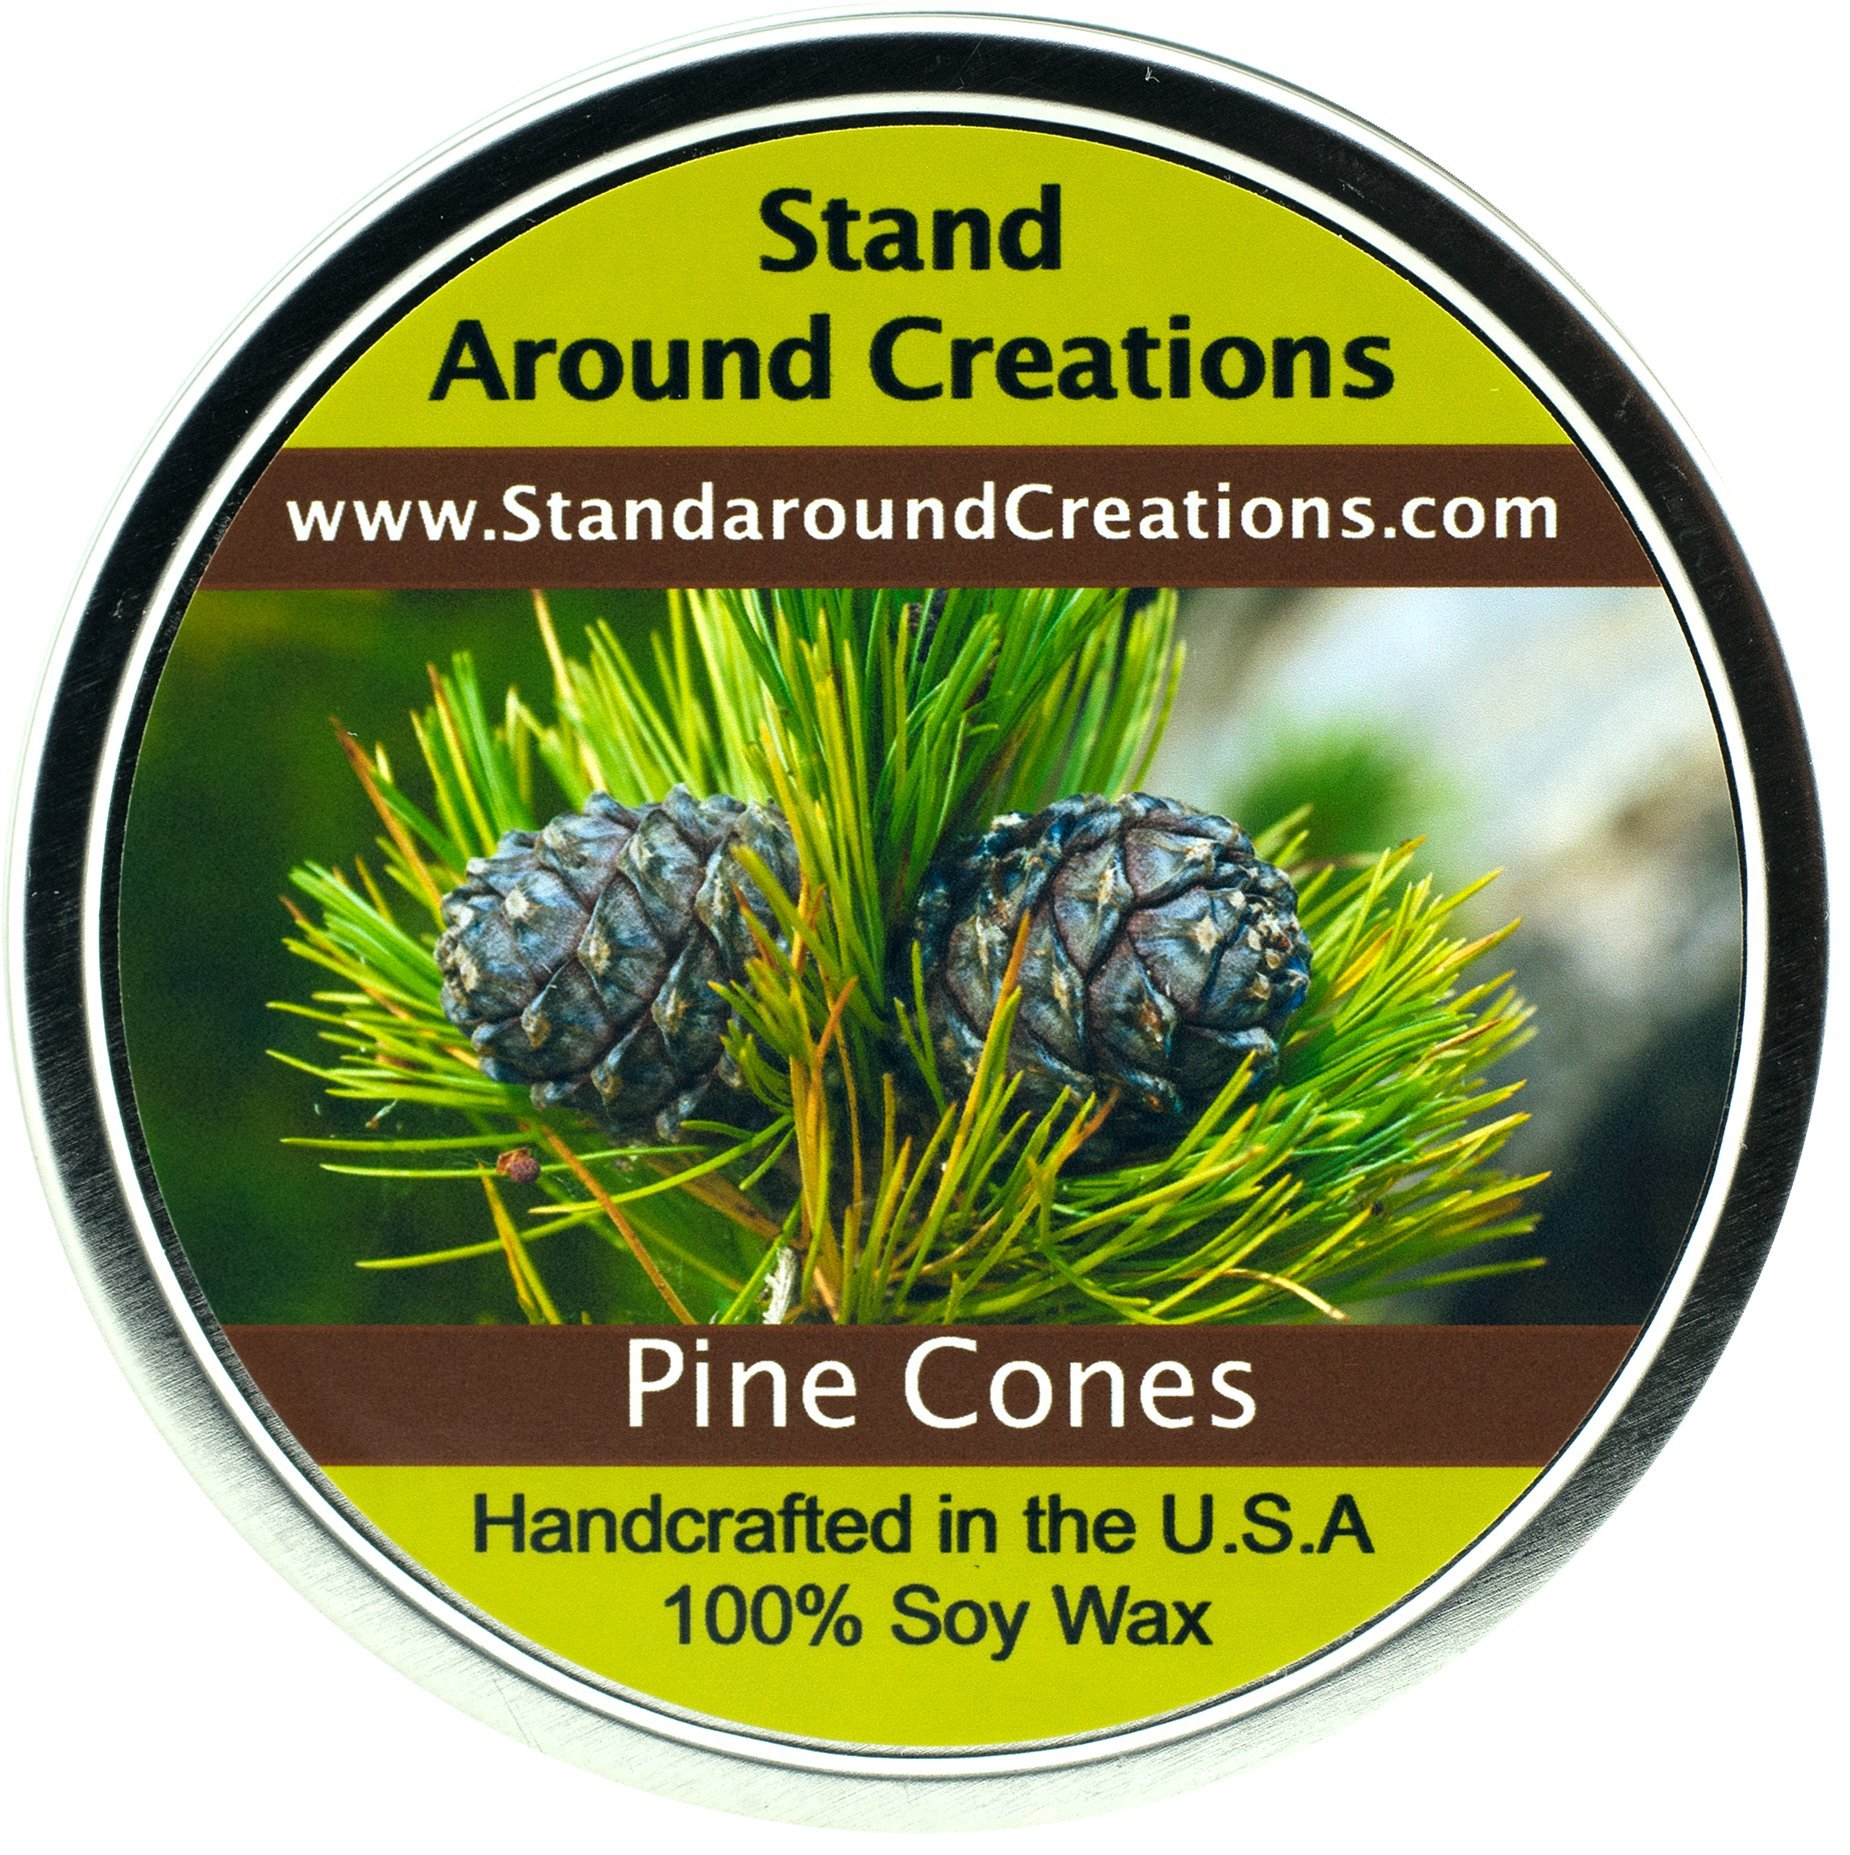 100% All Natural Soy Candle- 16 oz. - Pine Cones - The scent of a fresh cut pine bough. Notes of balsam w/ patchouli combine w/ natural spruce and cedar oils.